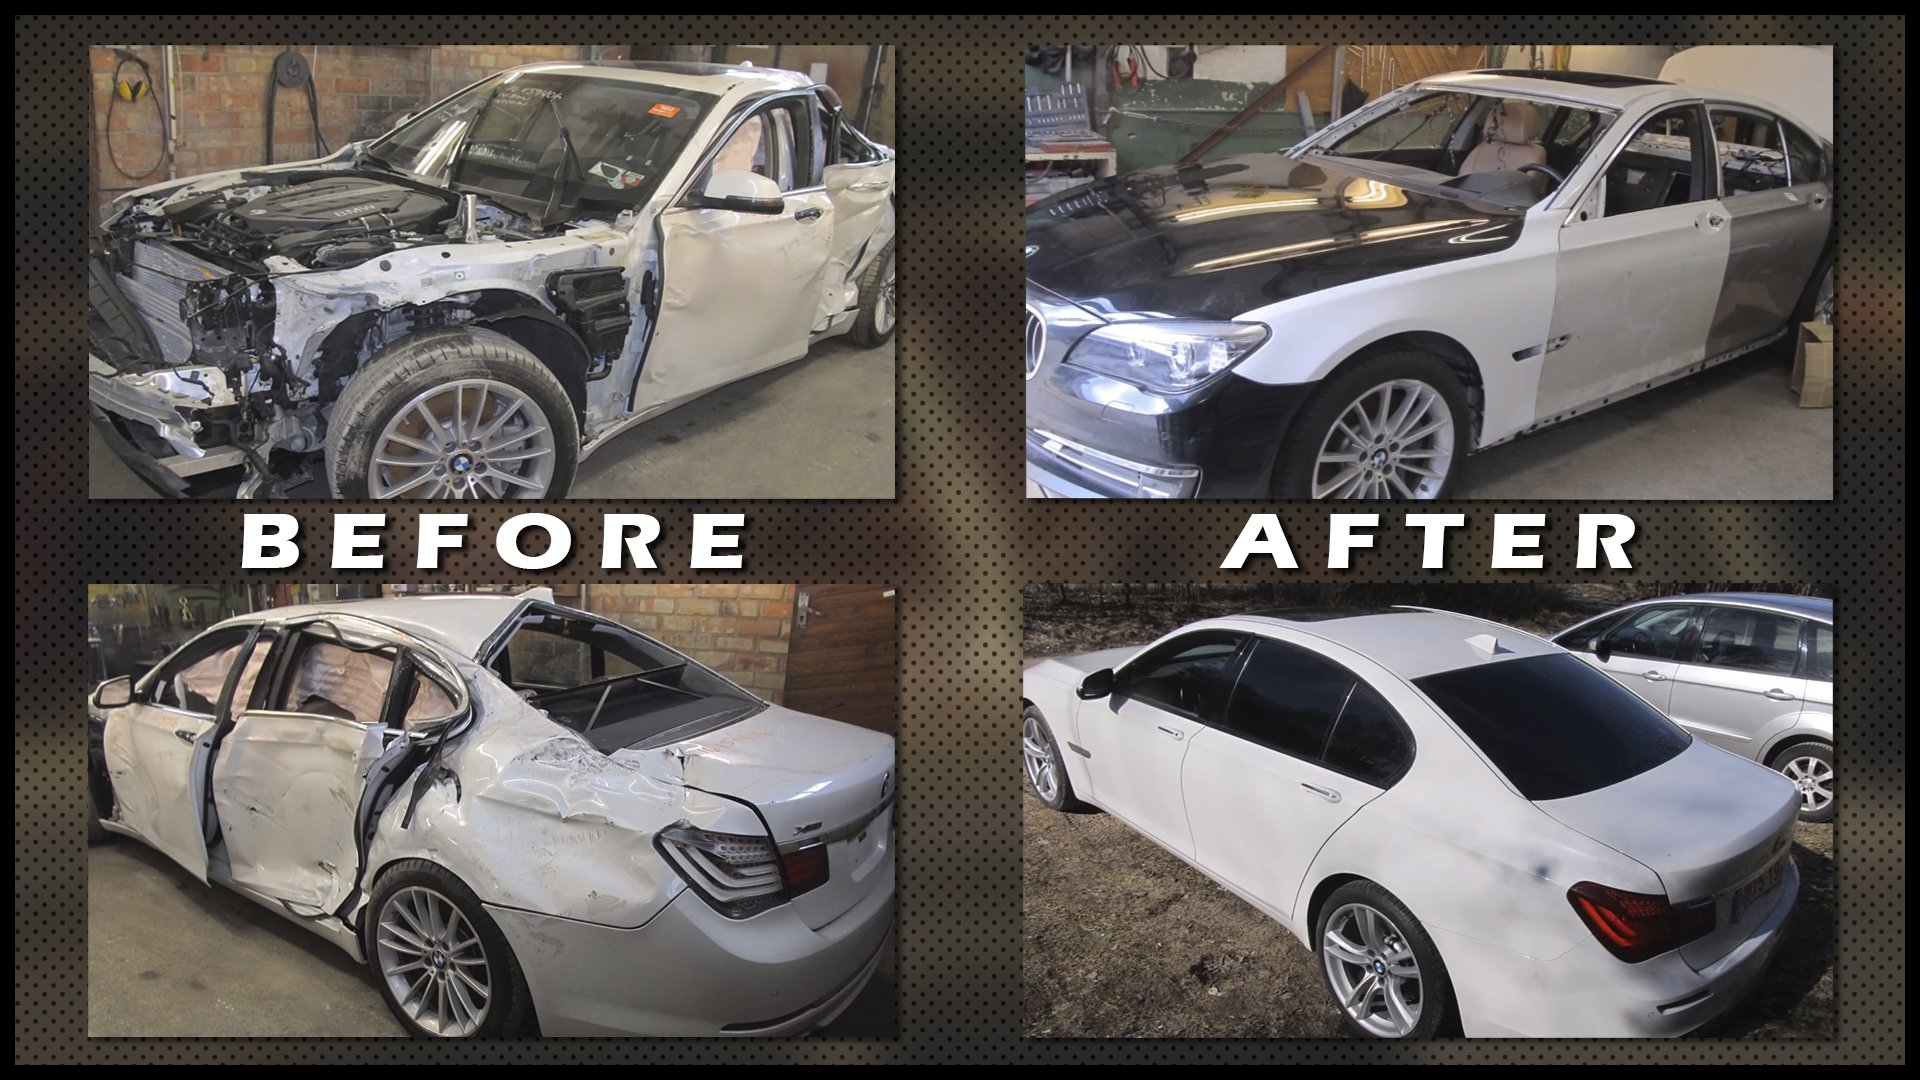 Watch This Russian Body Shop pletely Repair a Totaled BMW 7 Series The Drive